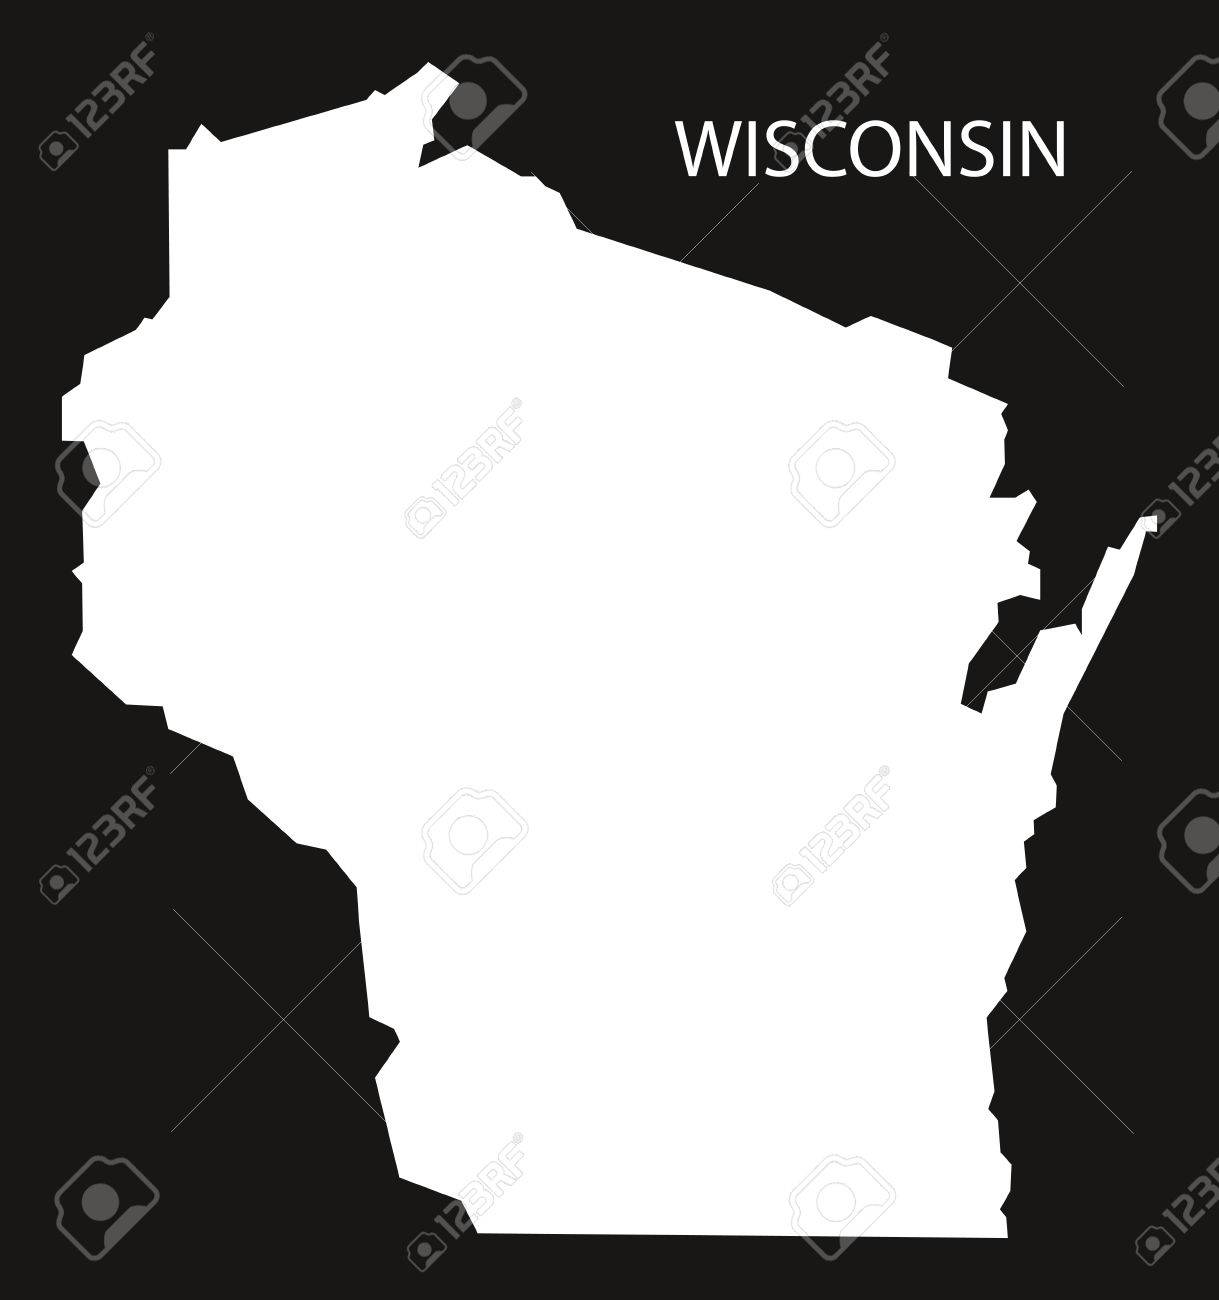 Usa Map Black.Wisconsin Usa Map Black Inverted Silhouette Royalty Free Cliparts